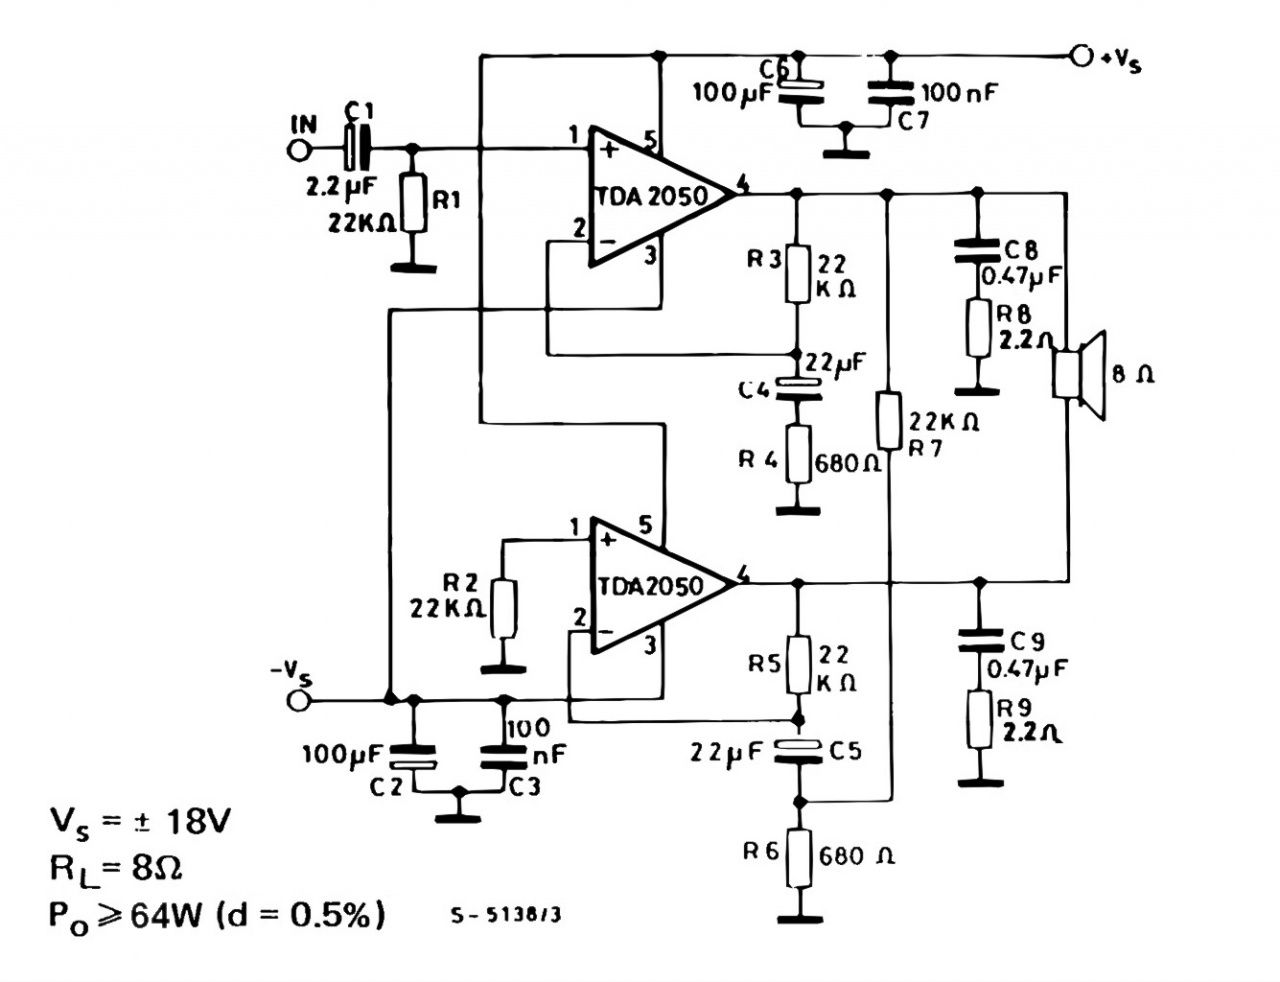 Integrated Circuit Schematics Circuit Board And Amplifier Diagrams